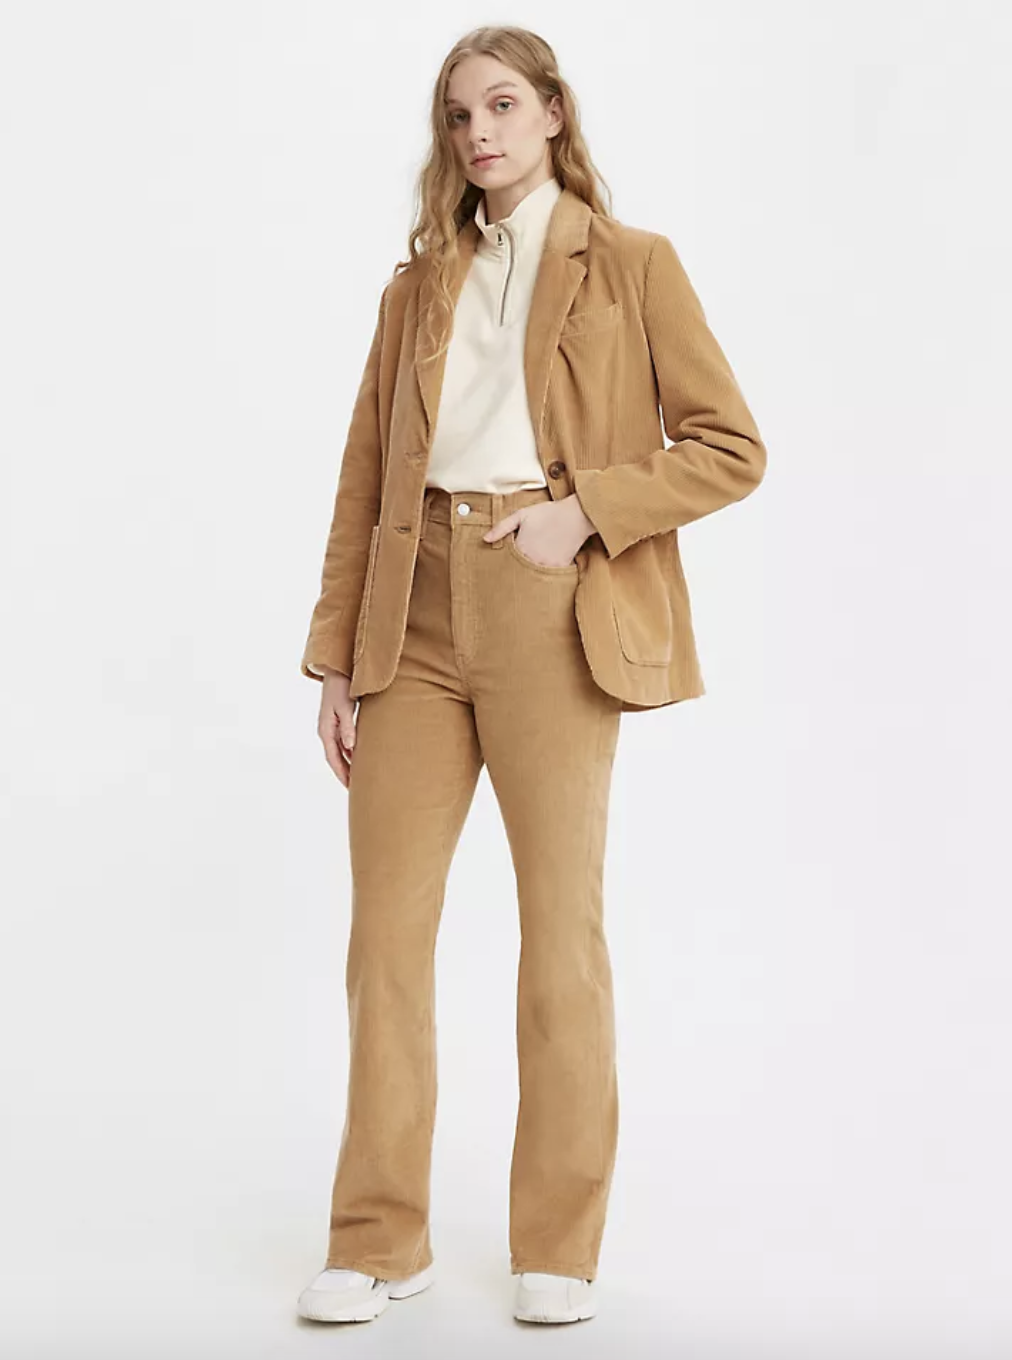 A model in khaki colored boot cut high waisted pants